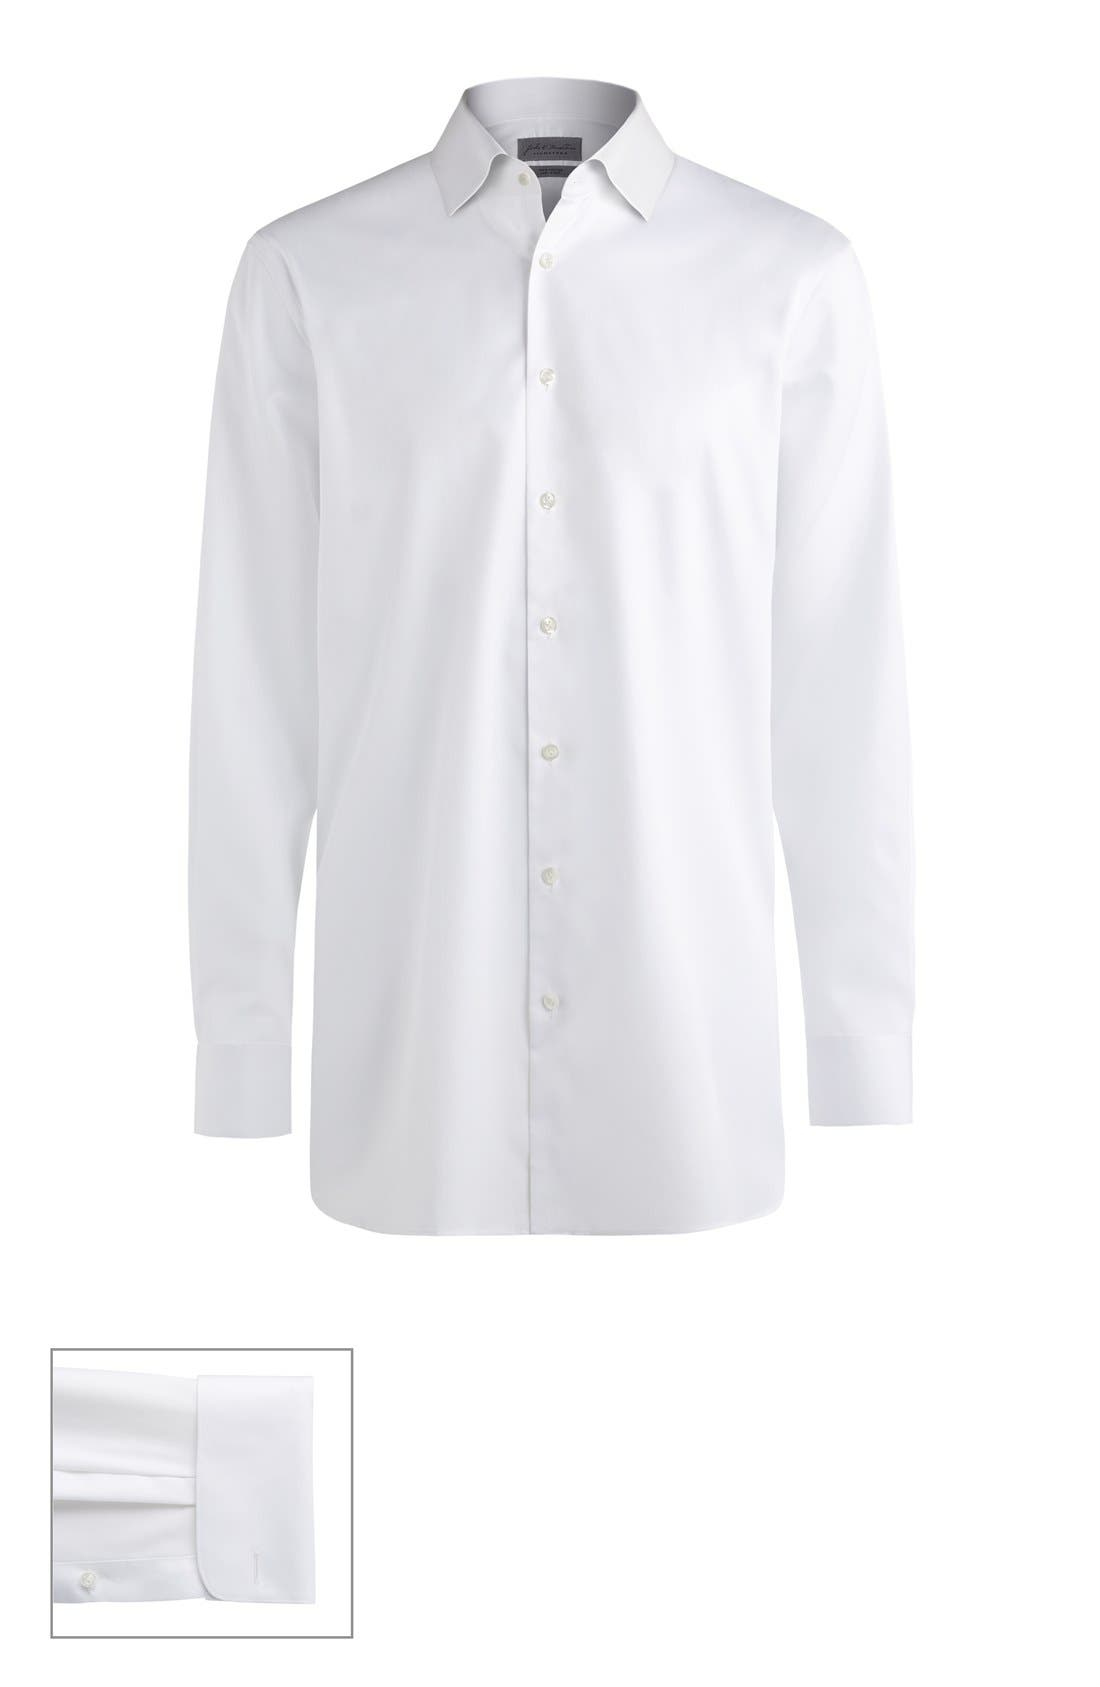 John W. Nordstrom® Made to Measure Trim Fit Spread Collar Solid Dress Shirt